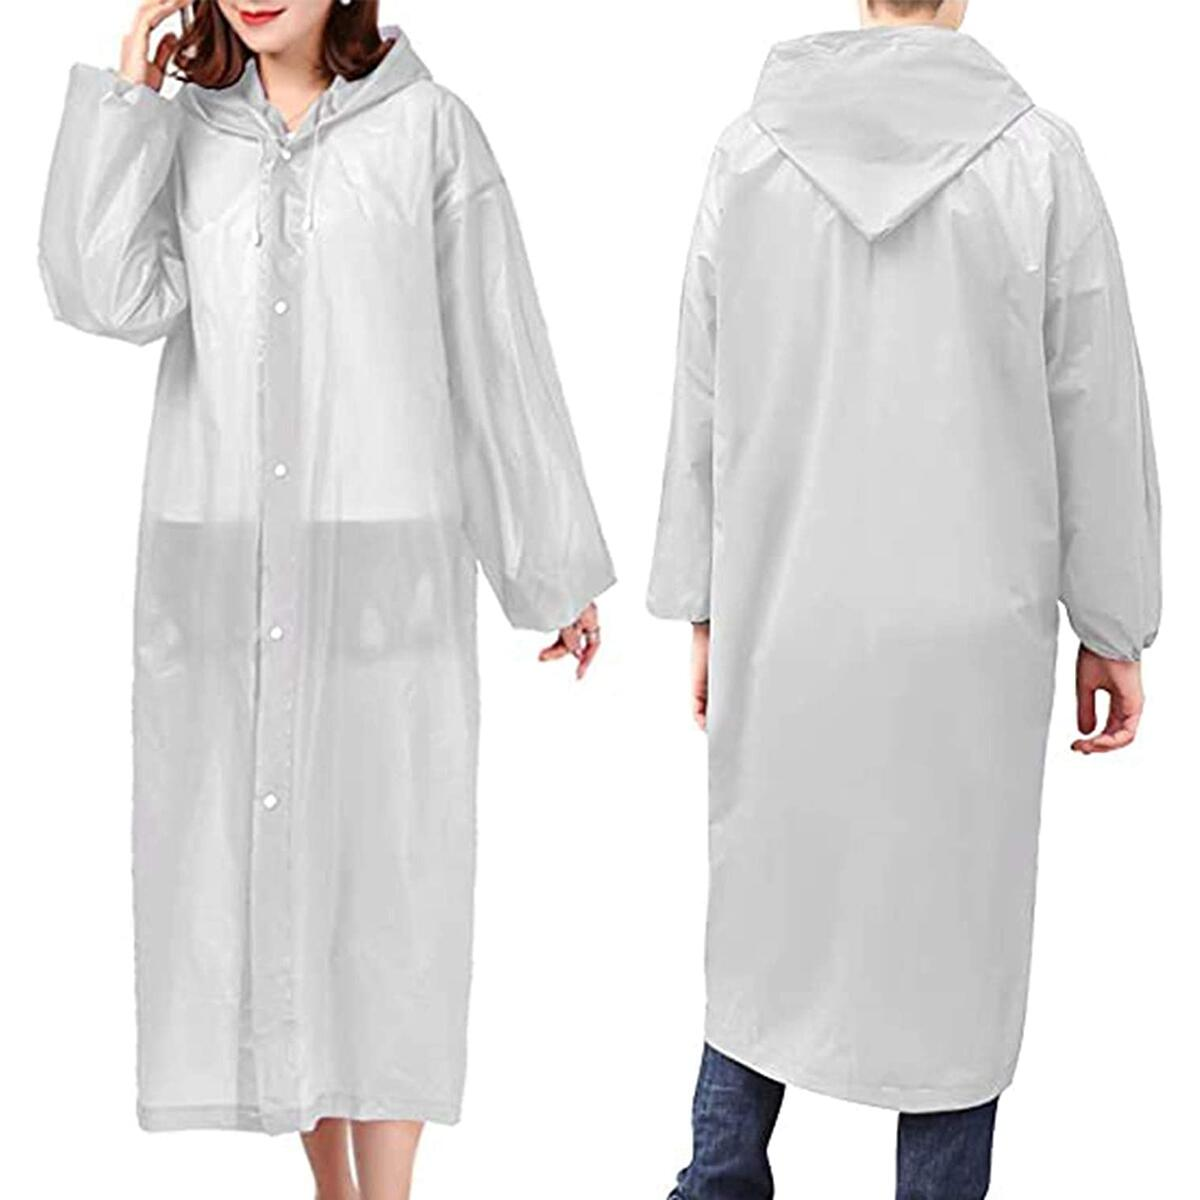 Rain Ponchos for Women Men Adults (2 Pack) Reusable Portable Rain Coat Jacket